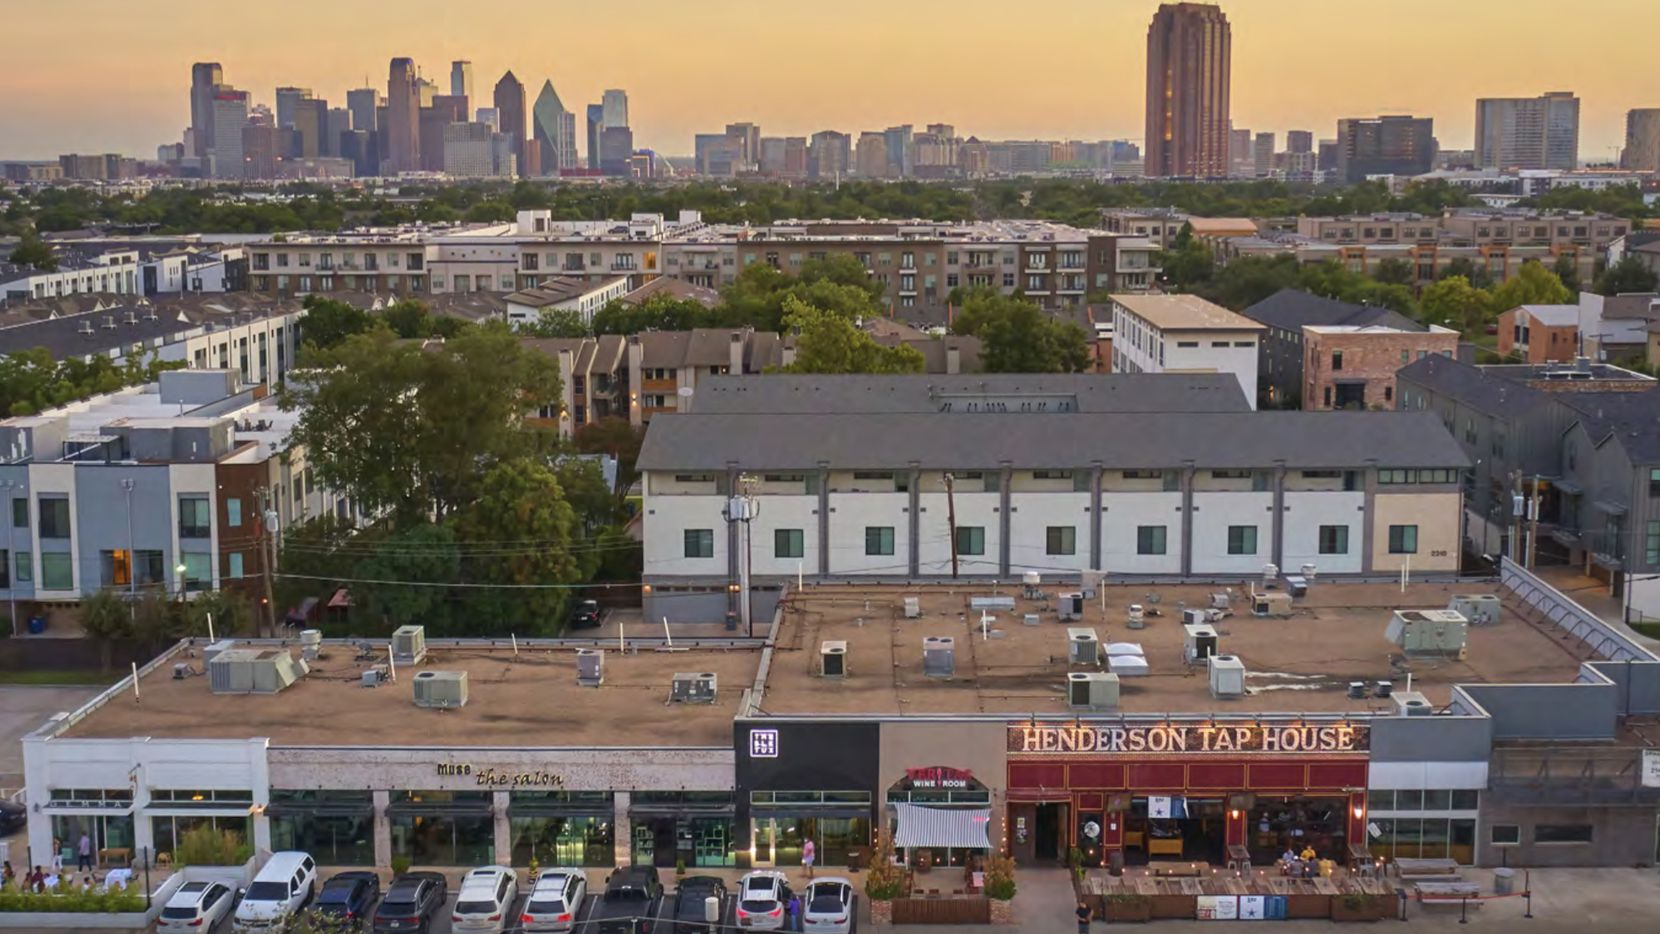 The Henderson Avenue properties house some of the most popular restaurants and watering holes in Dallas.